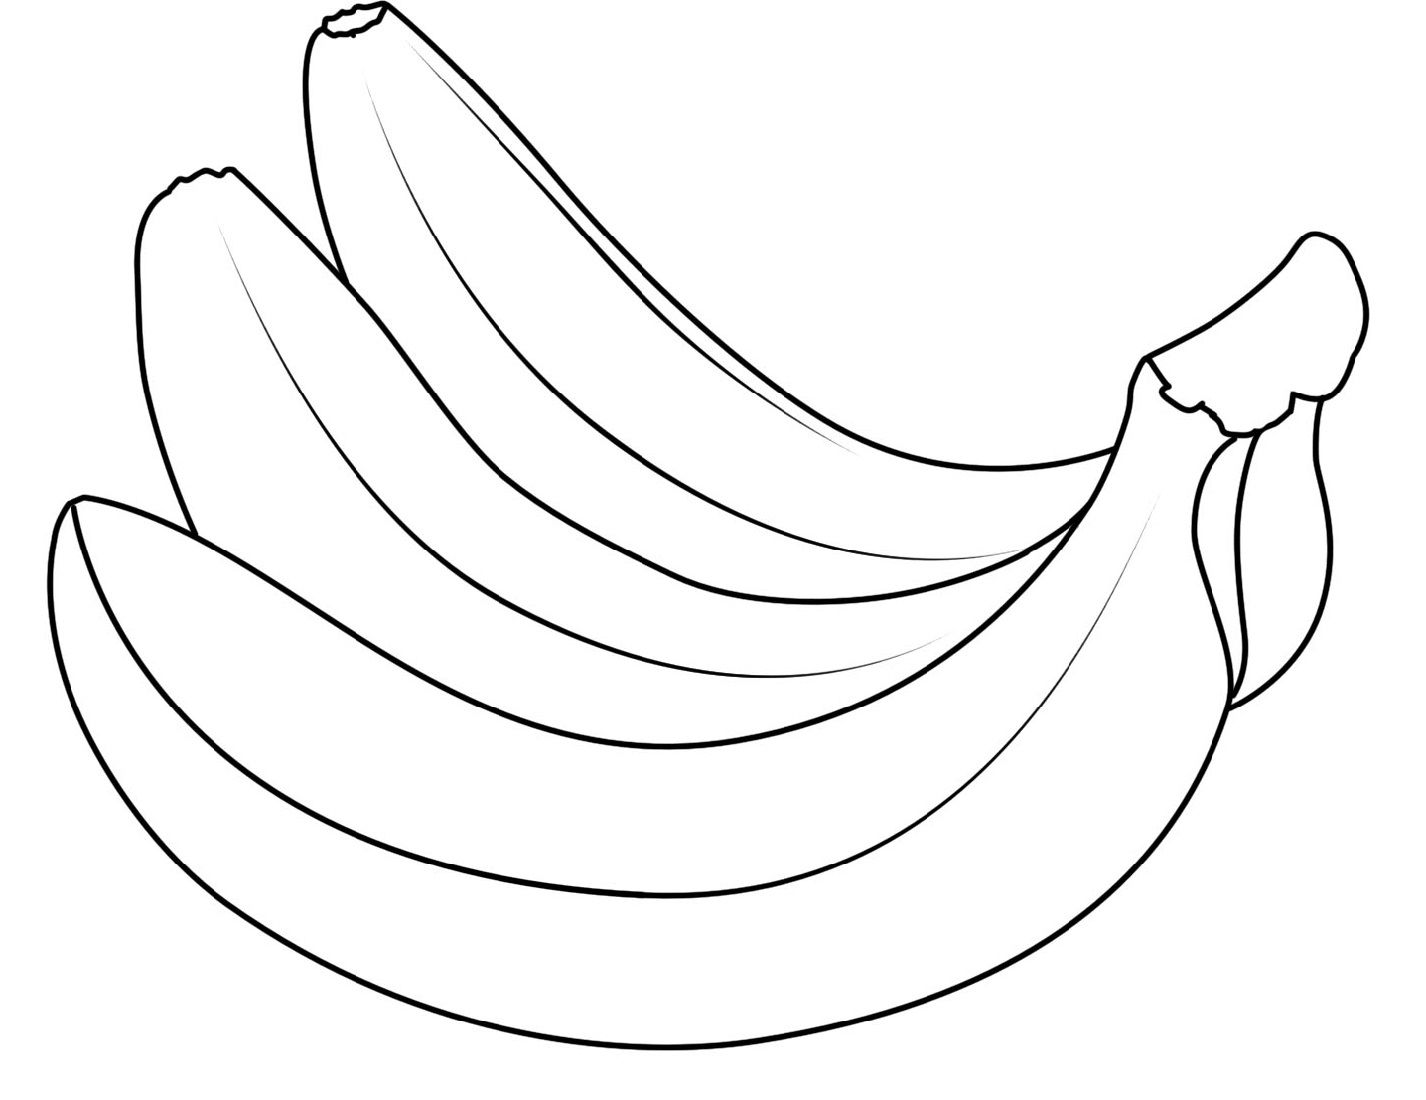 fruit coloring for kids fruit coloring pages for students fruit coloring pages coloring kids for fruit